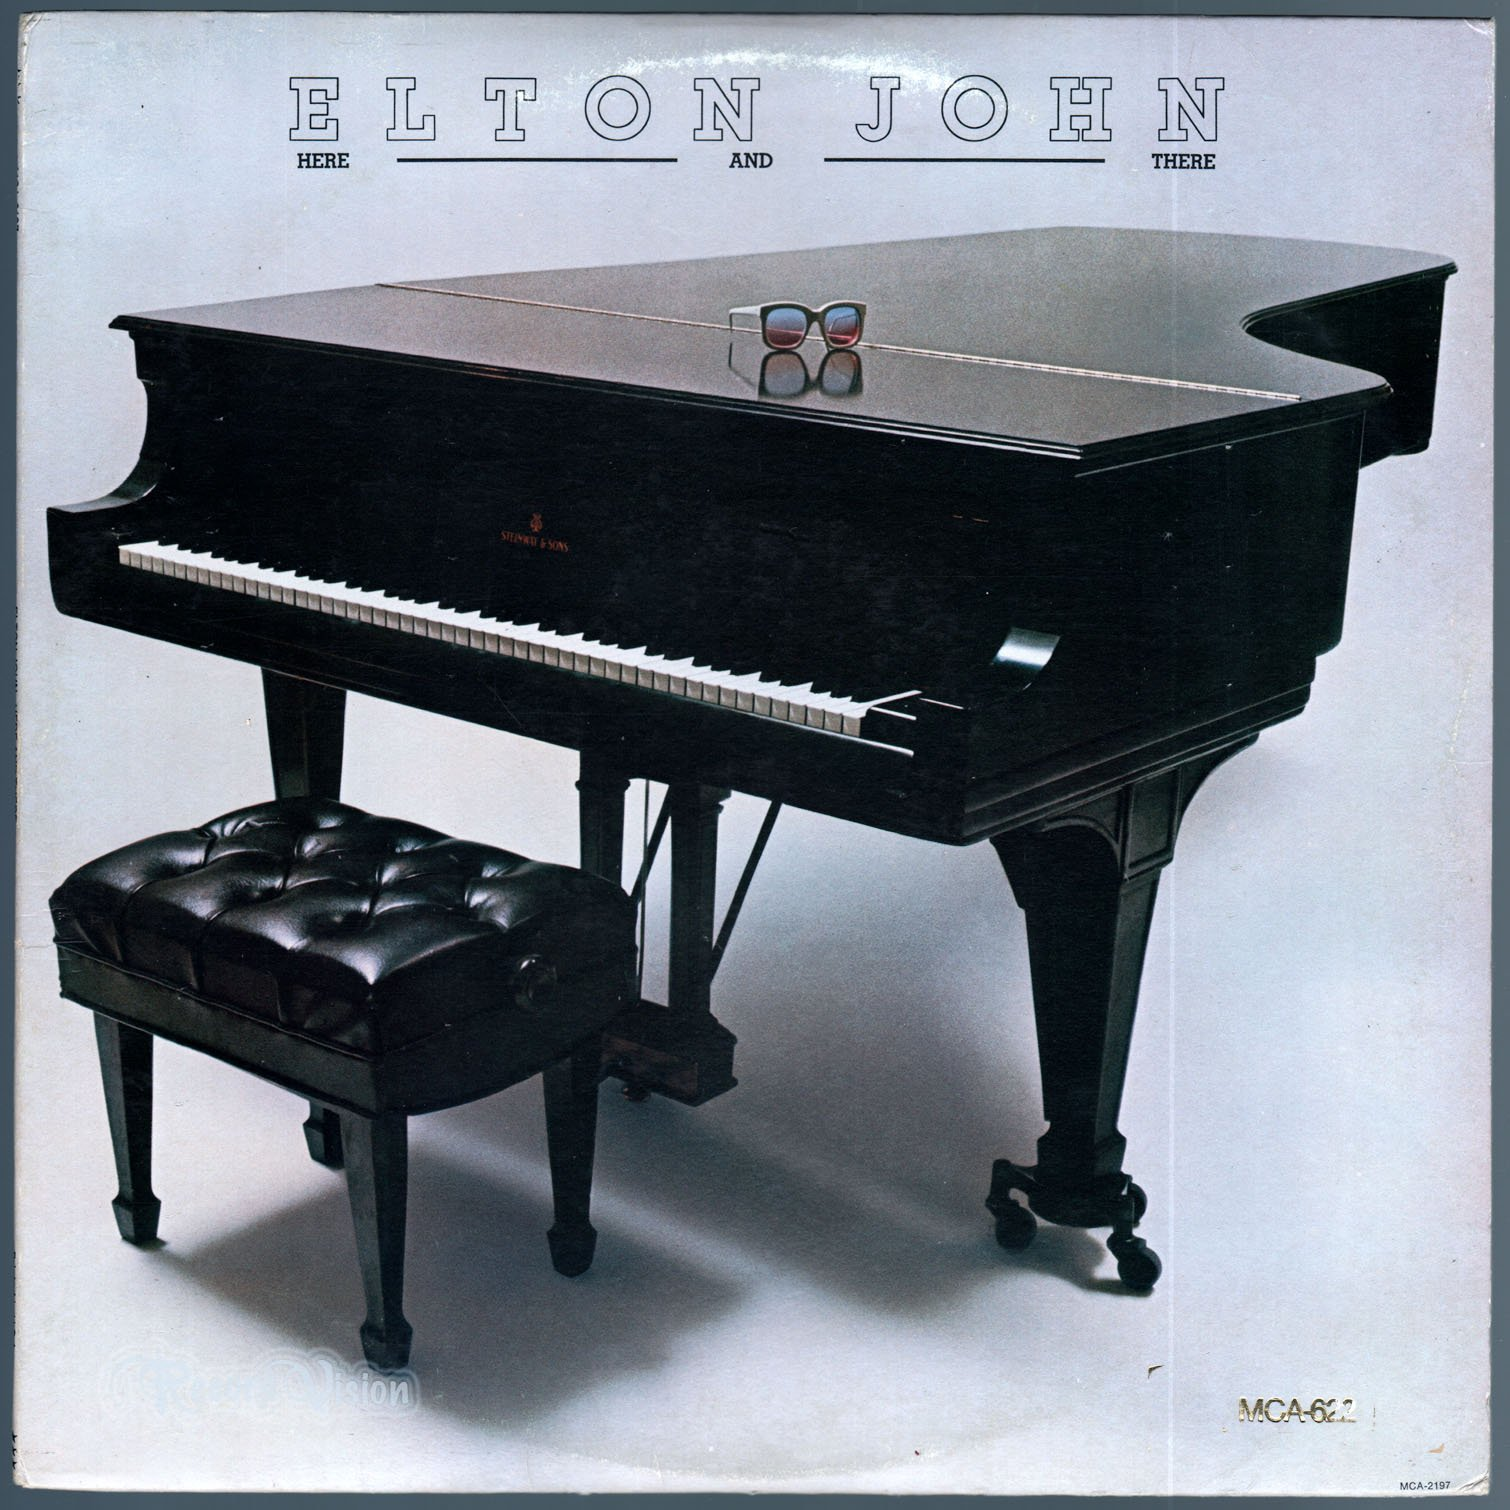 Elton John: Here and There